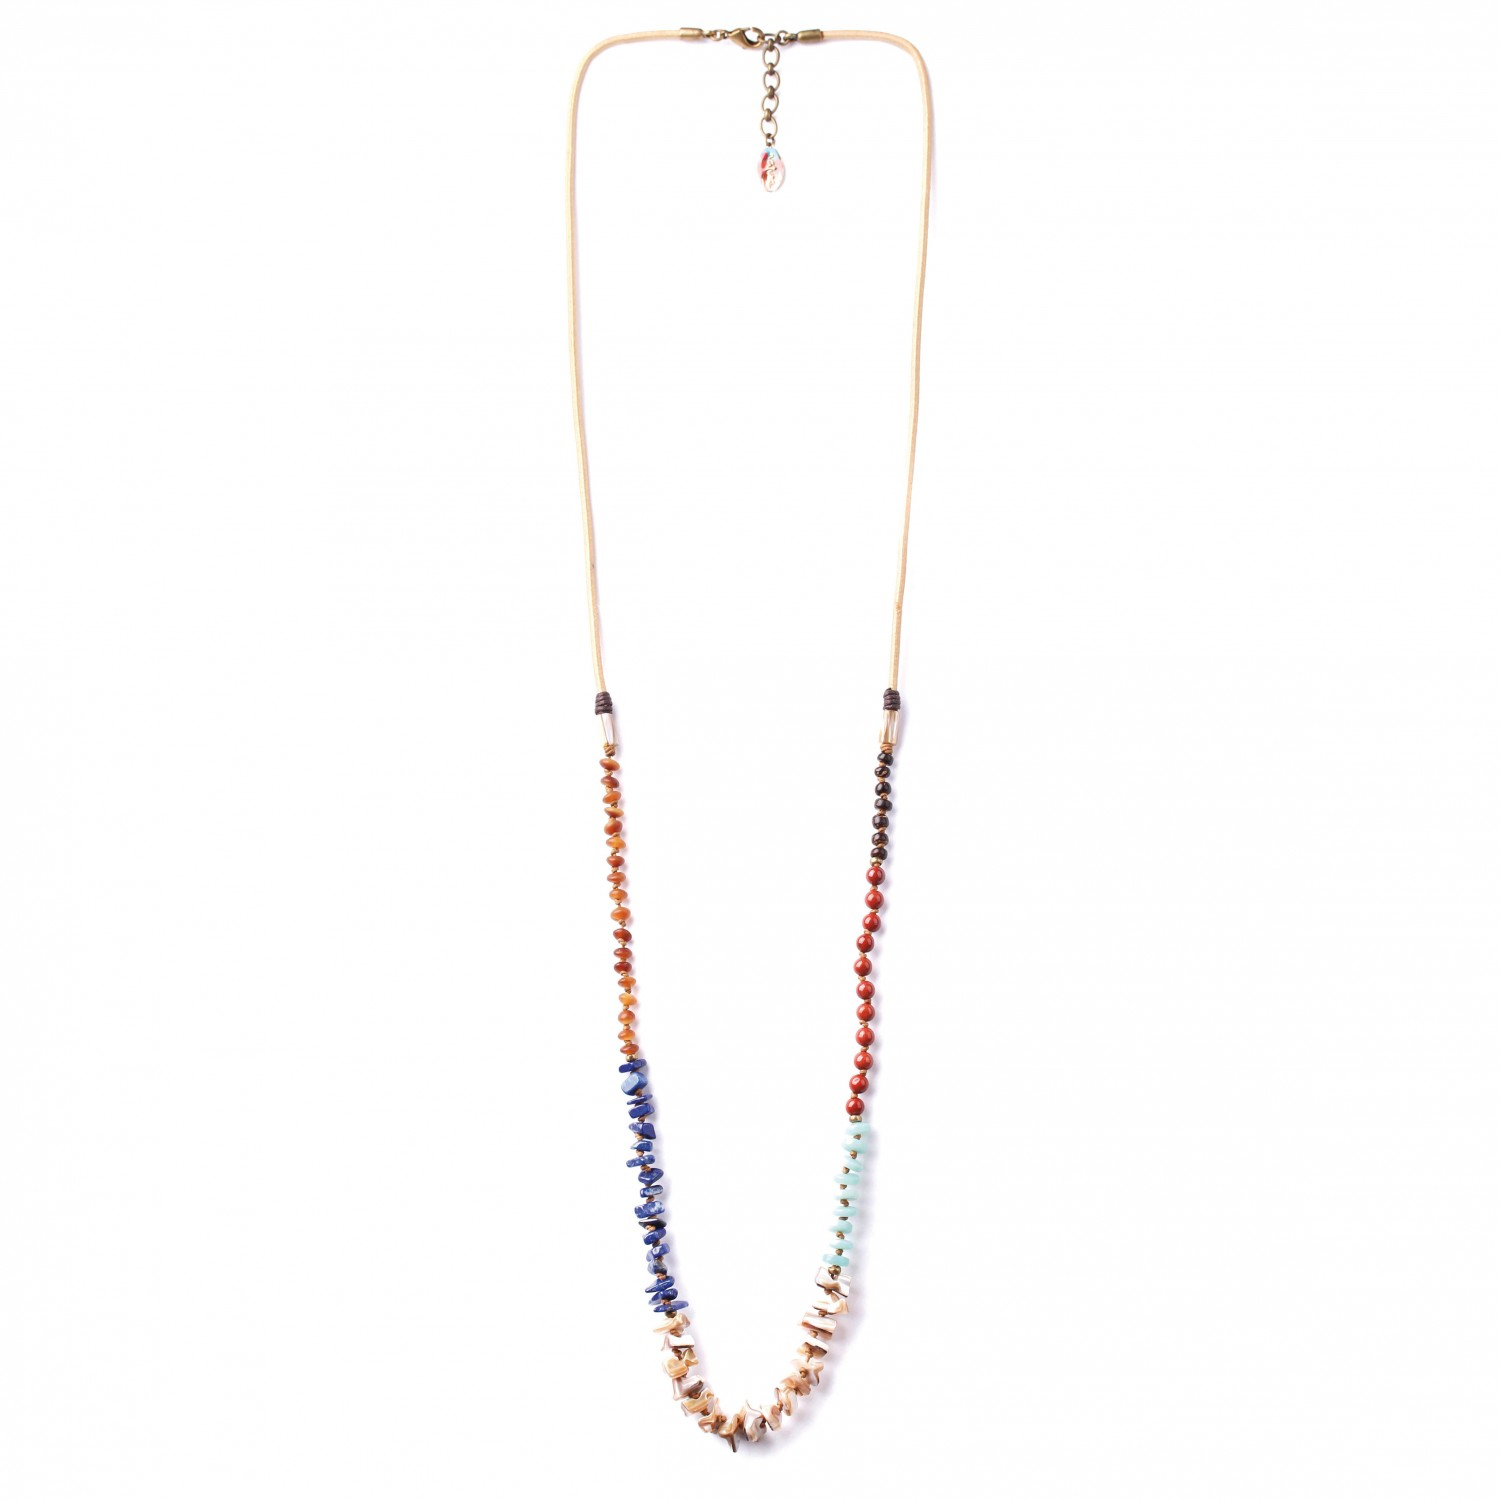 SOCOTRA collier long